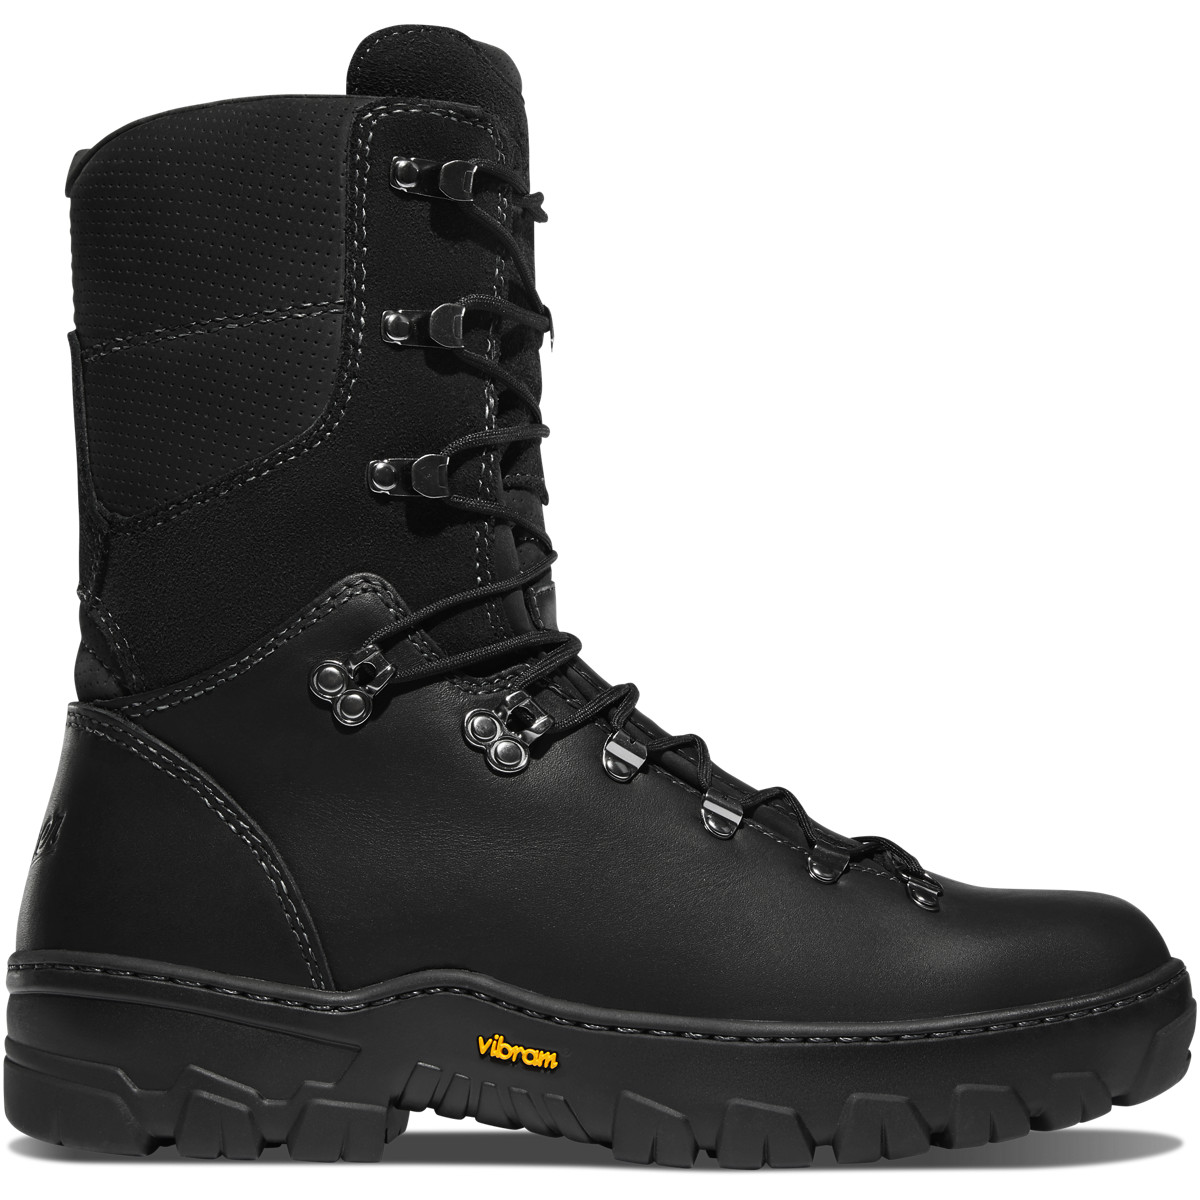 Danner - Wildland Tactical Firefighter 8